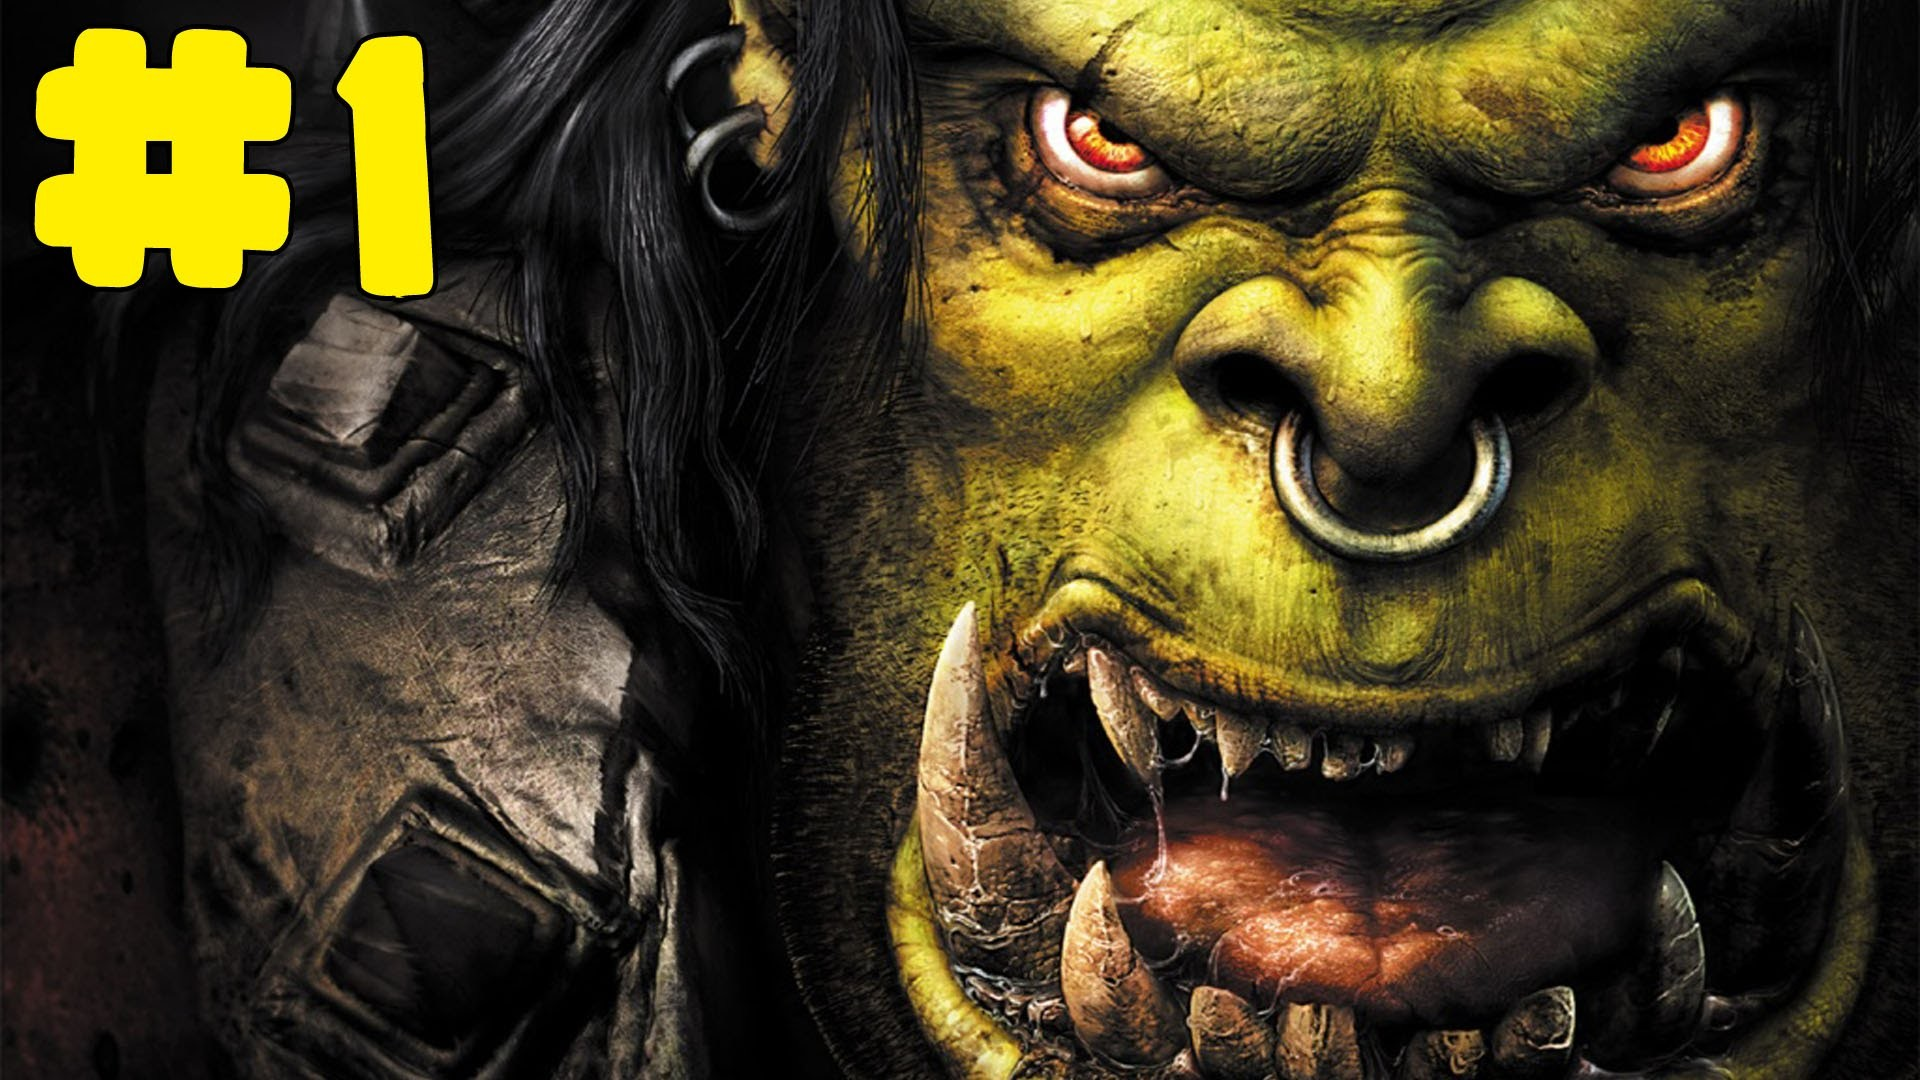 Res: 1920x1080, Warcraft III: Reign of Chaos HD Wallpapers 6 - 1920 X 1080